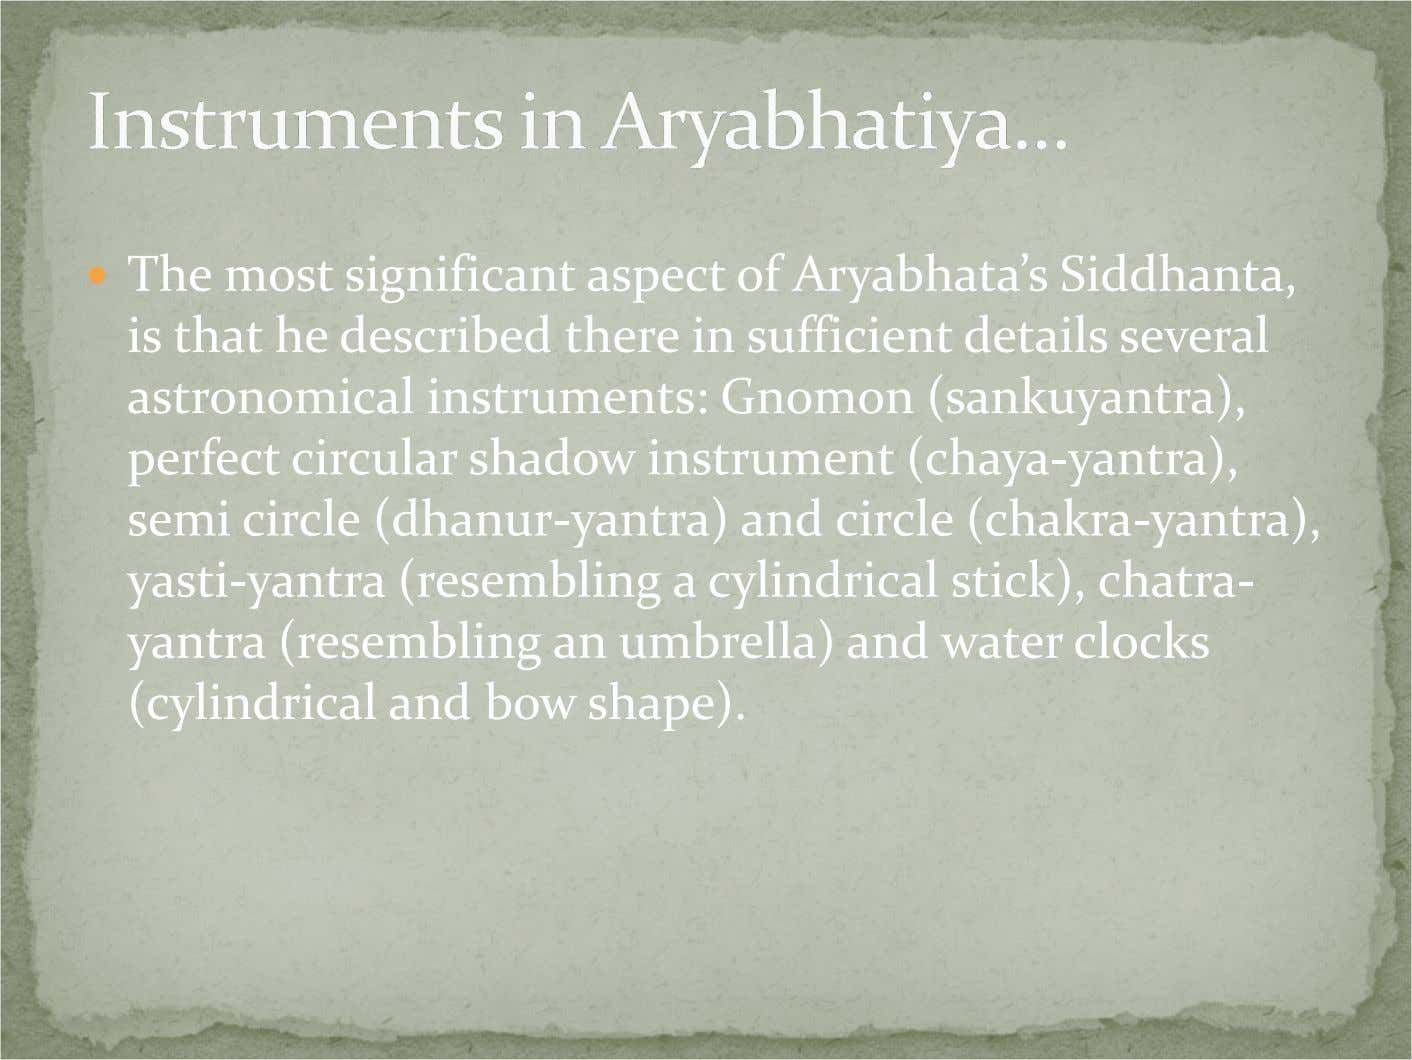 The most significant aspect of Aryabhata's Siddhanta, is that he described there in sufficient details